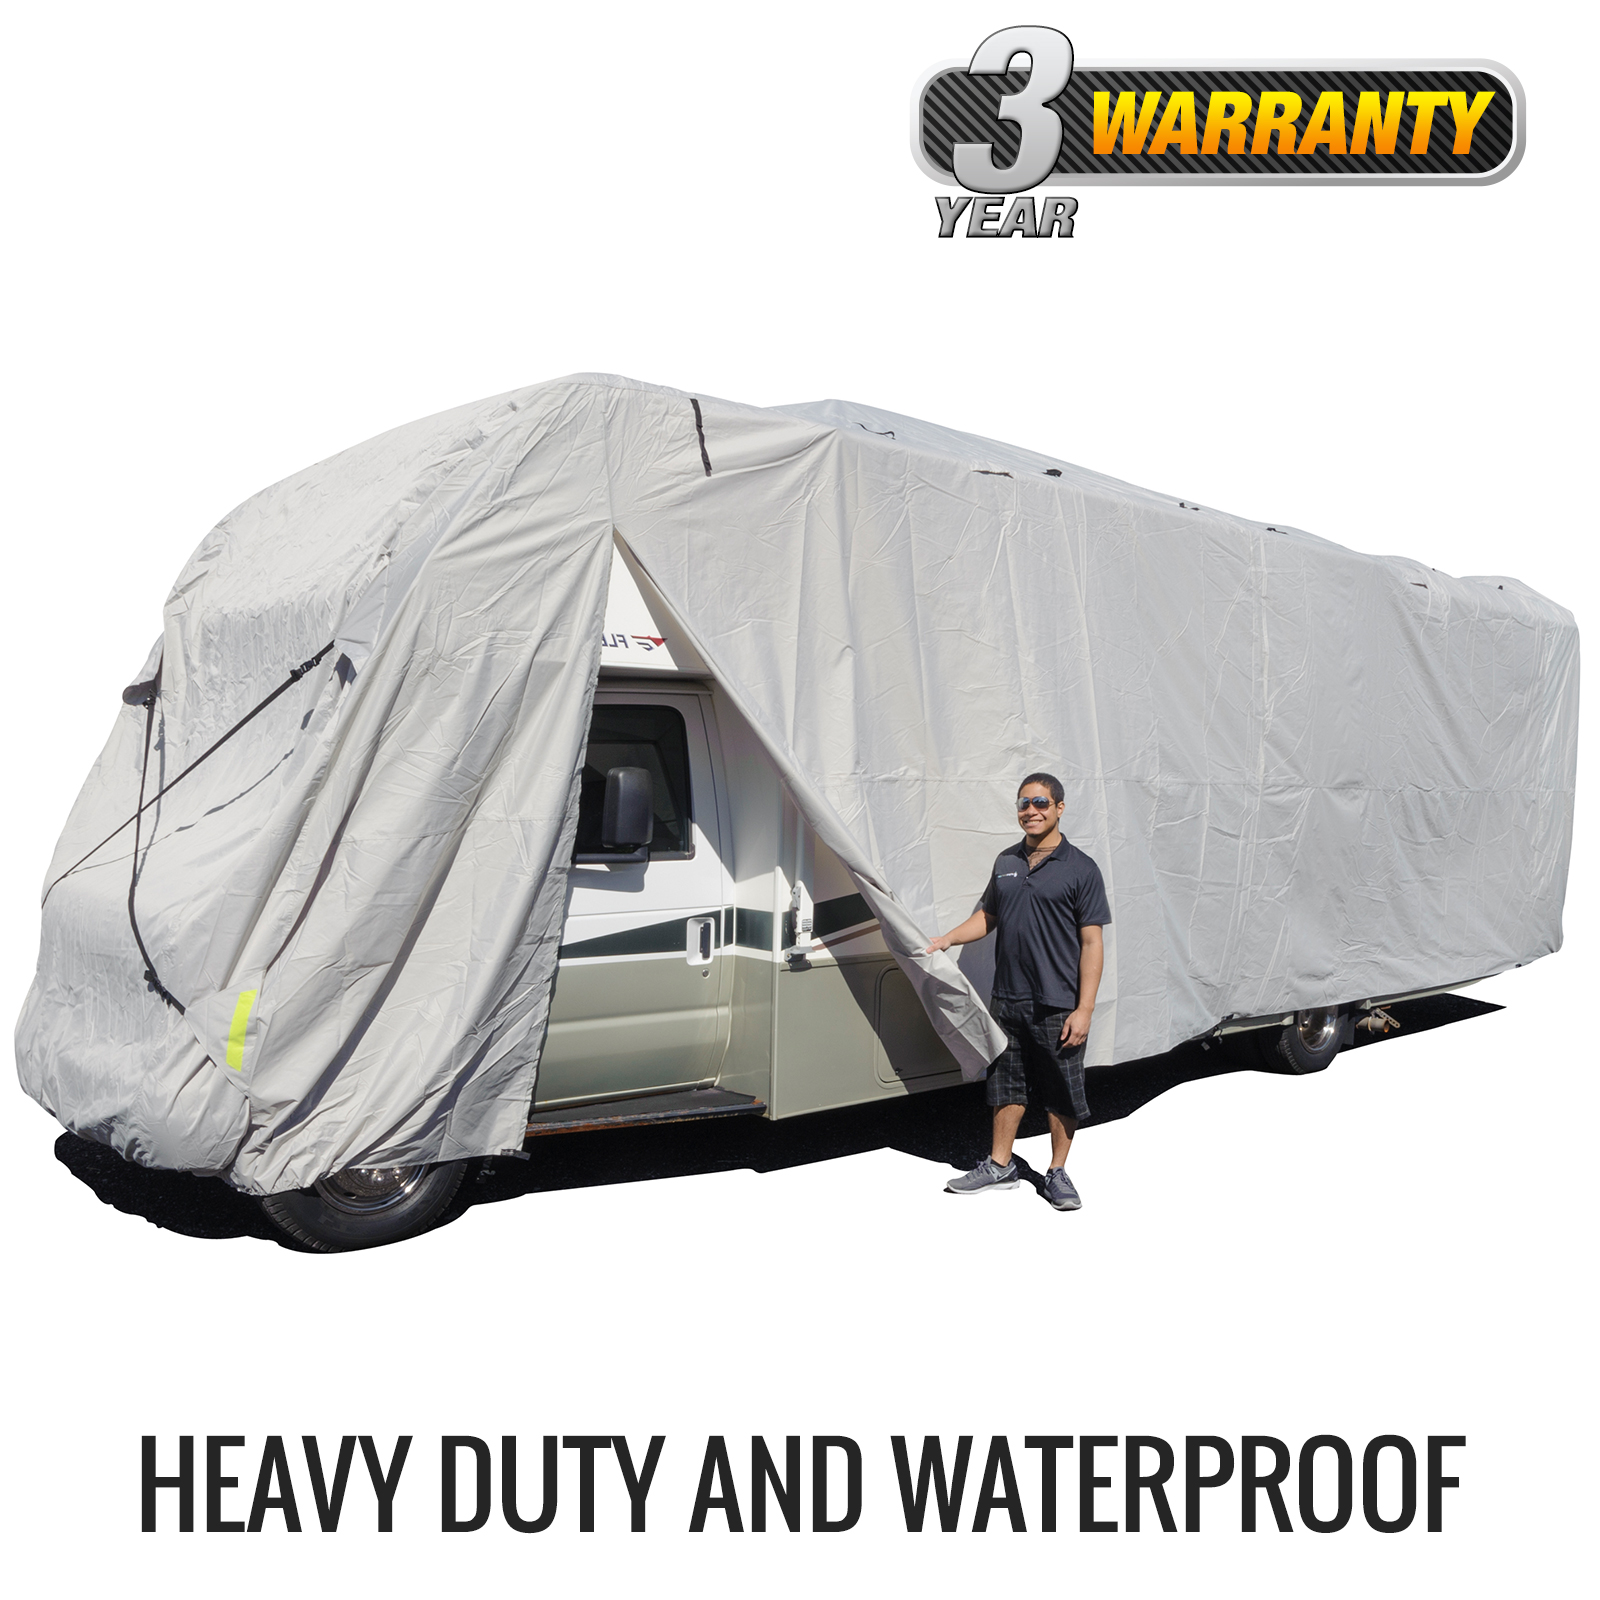 Budge Premier Class C RV Cover (Gray) Size A Up to 21' Long